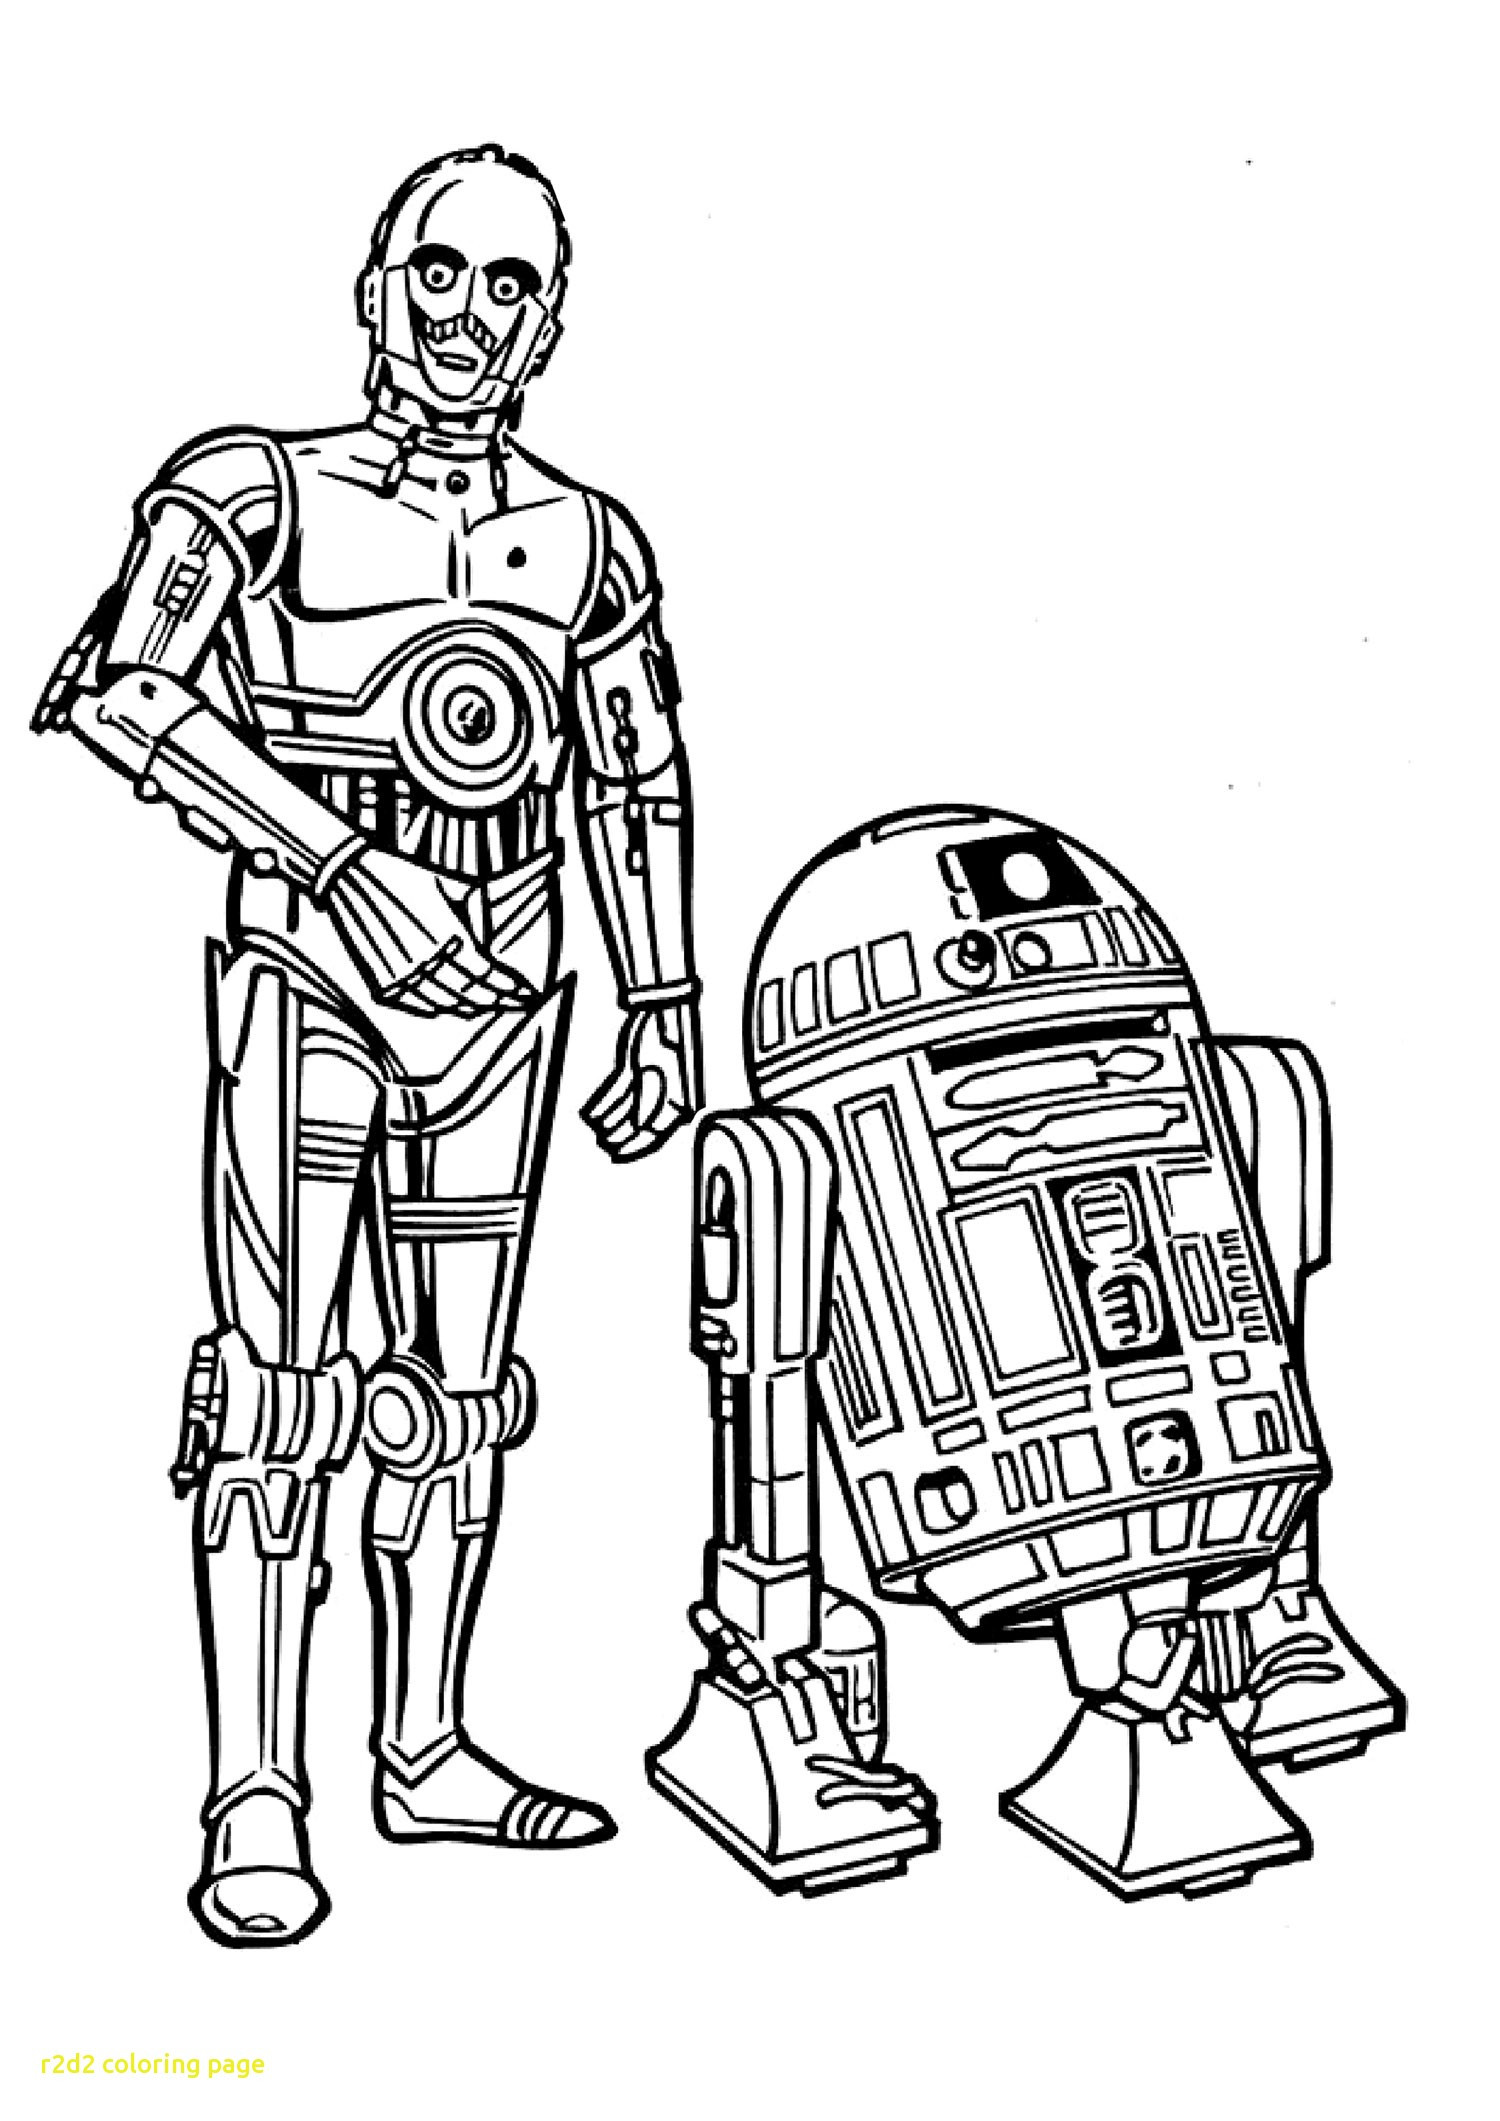 r2d2 coloring page r2d2 coloring pages lineart free printable coloring pages page r2d2 coloring